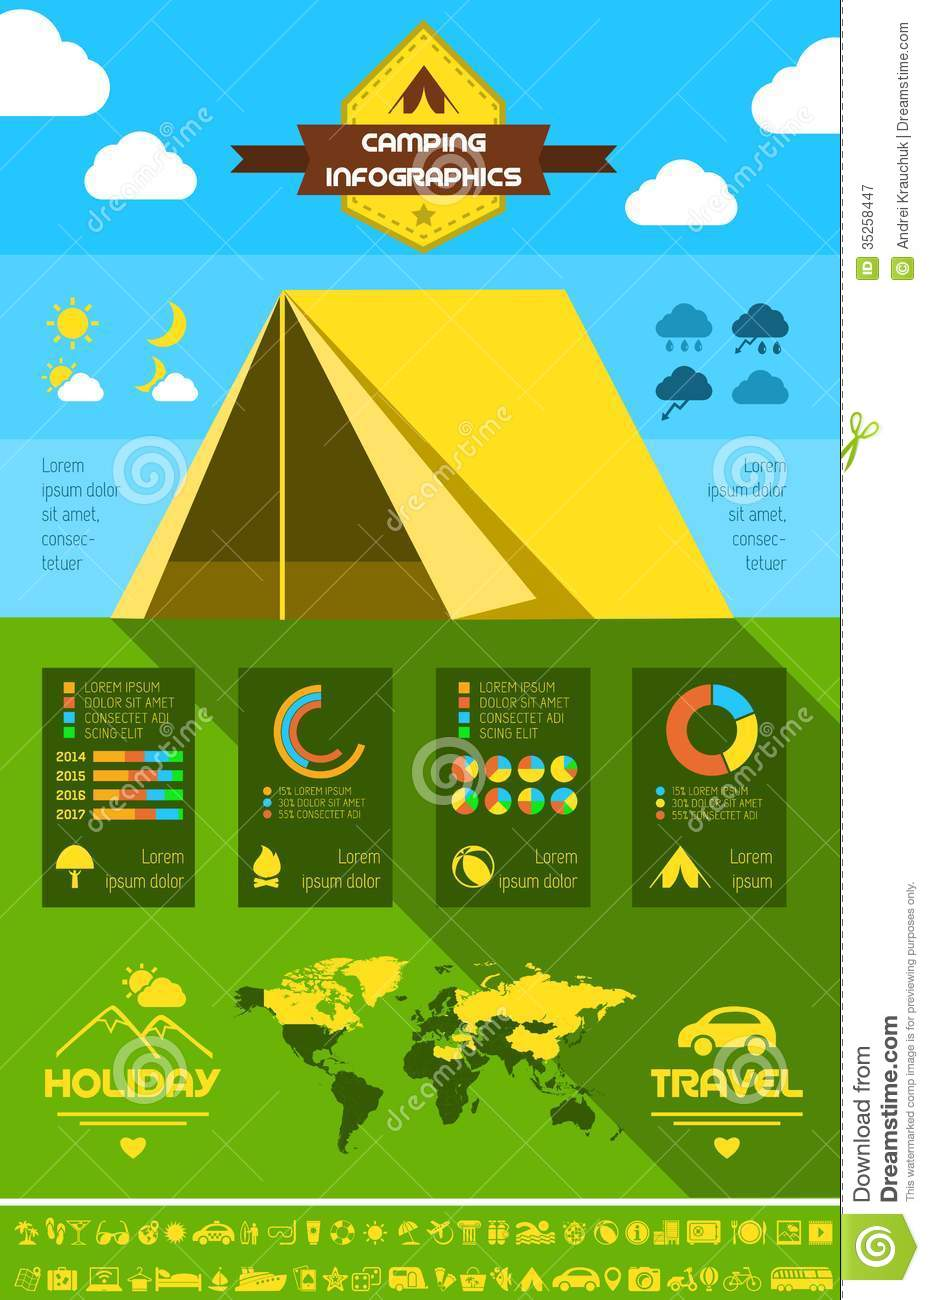 Flat Camping Infographic Template. Royalty Free Stock Photography ...